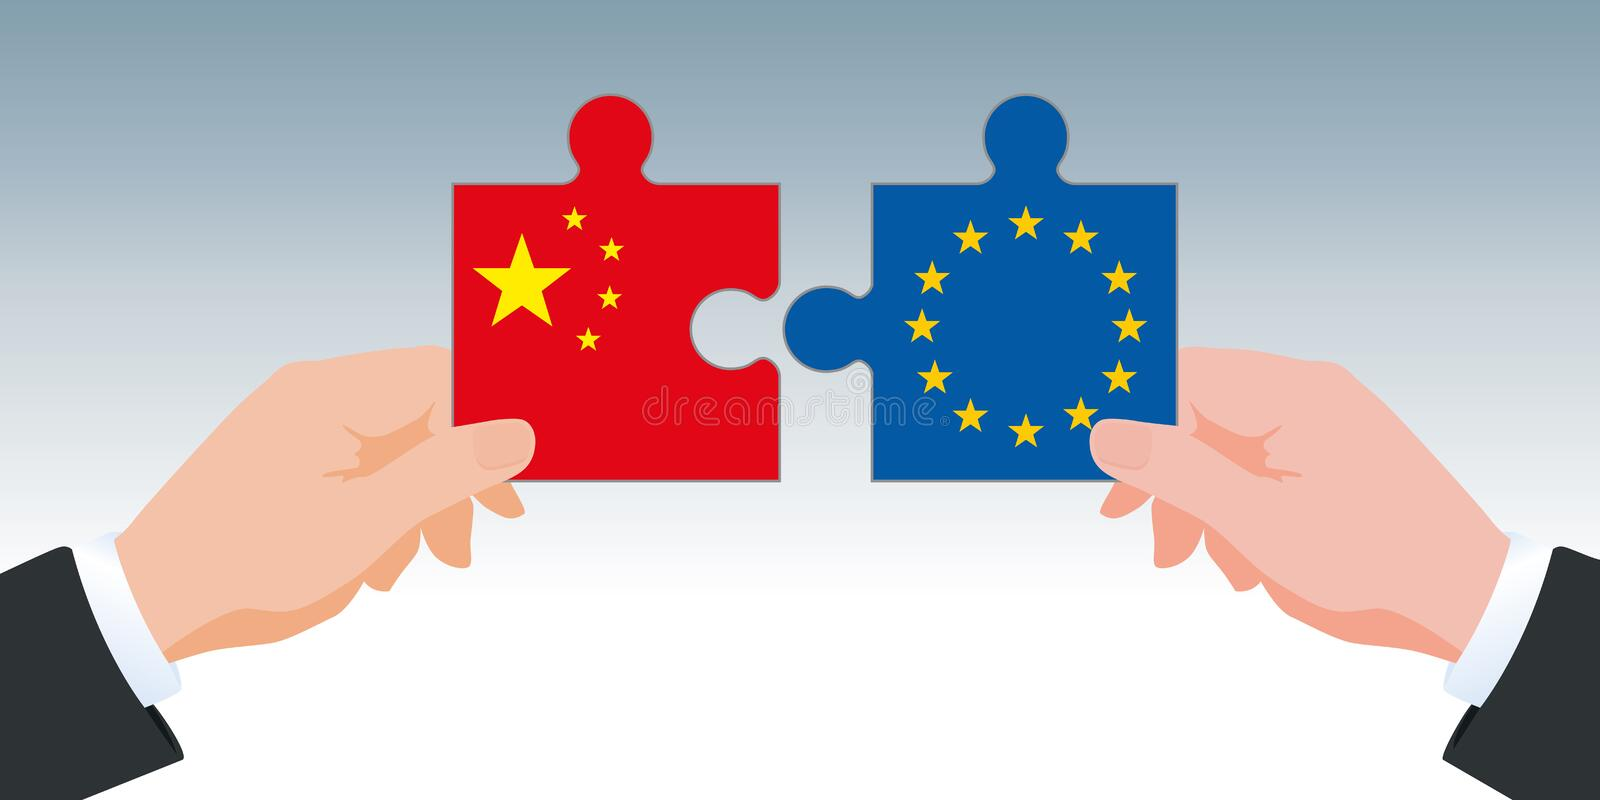 International trade symbol with exchanges between China and Europe showing two hands holding puzzle pieces in the colors of their. Concept of economic and stock illustration